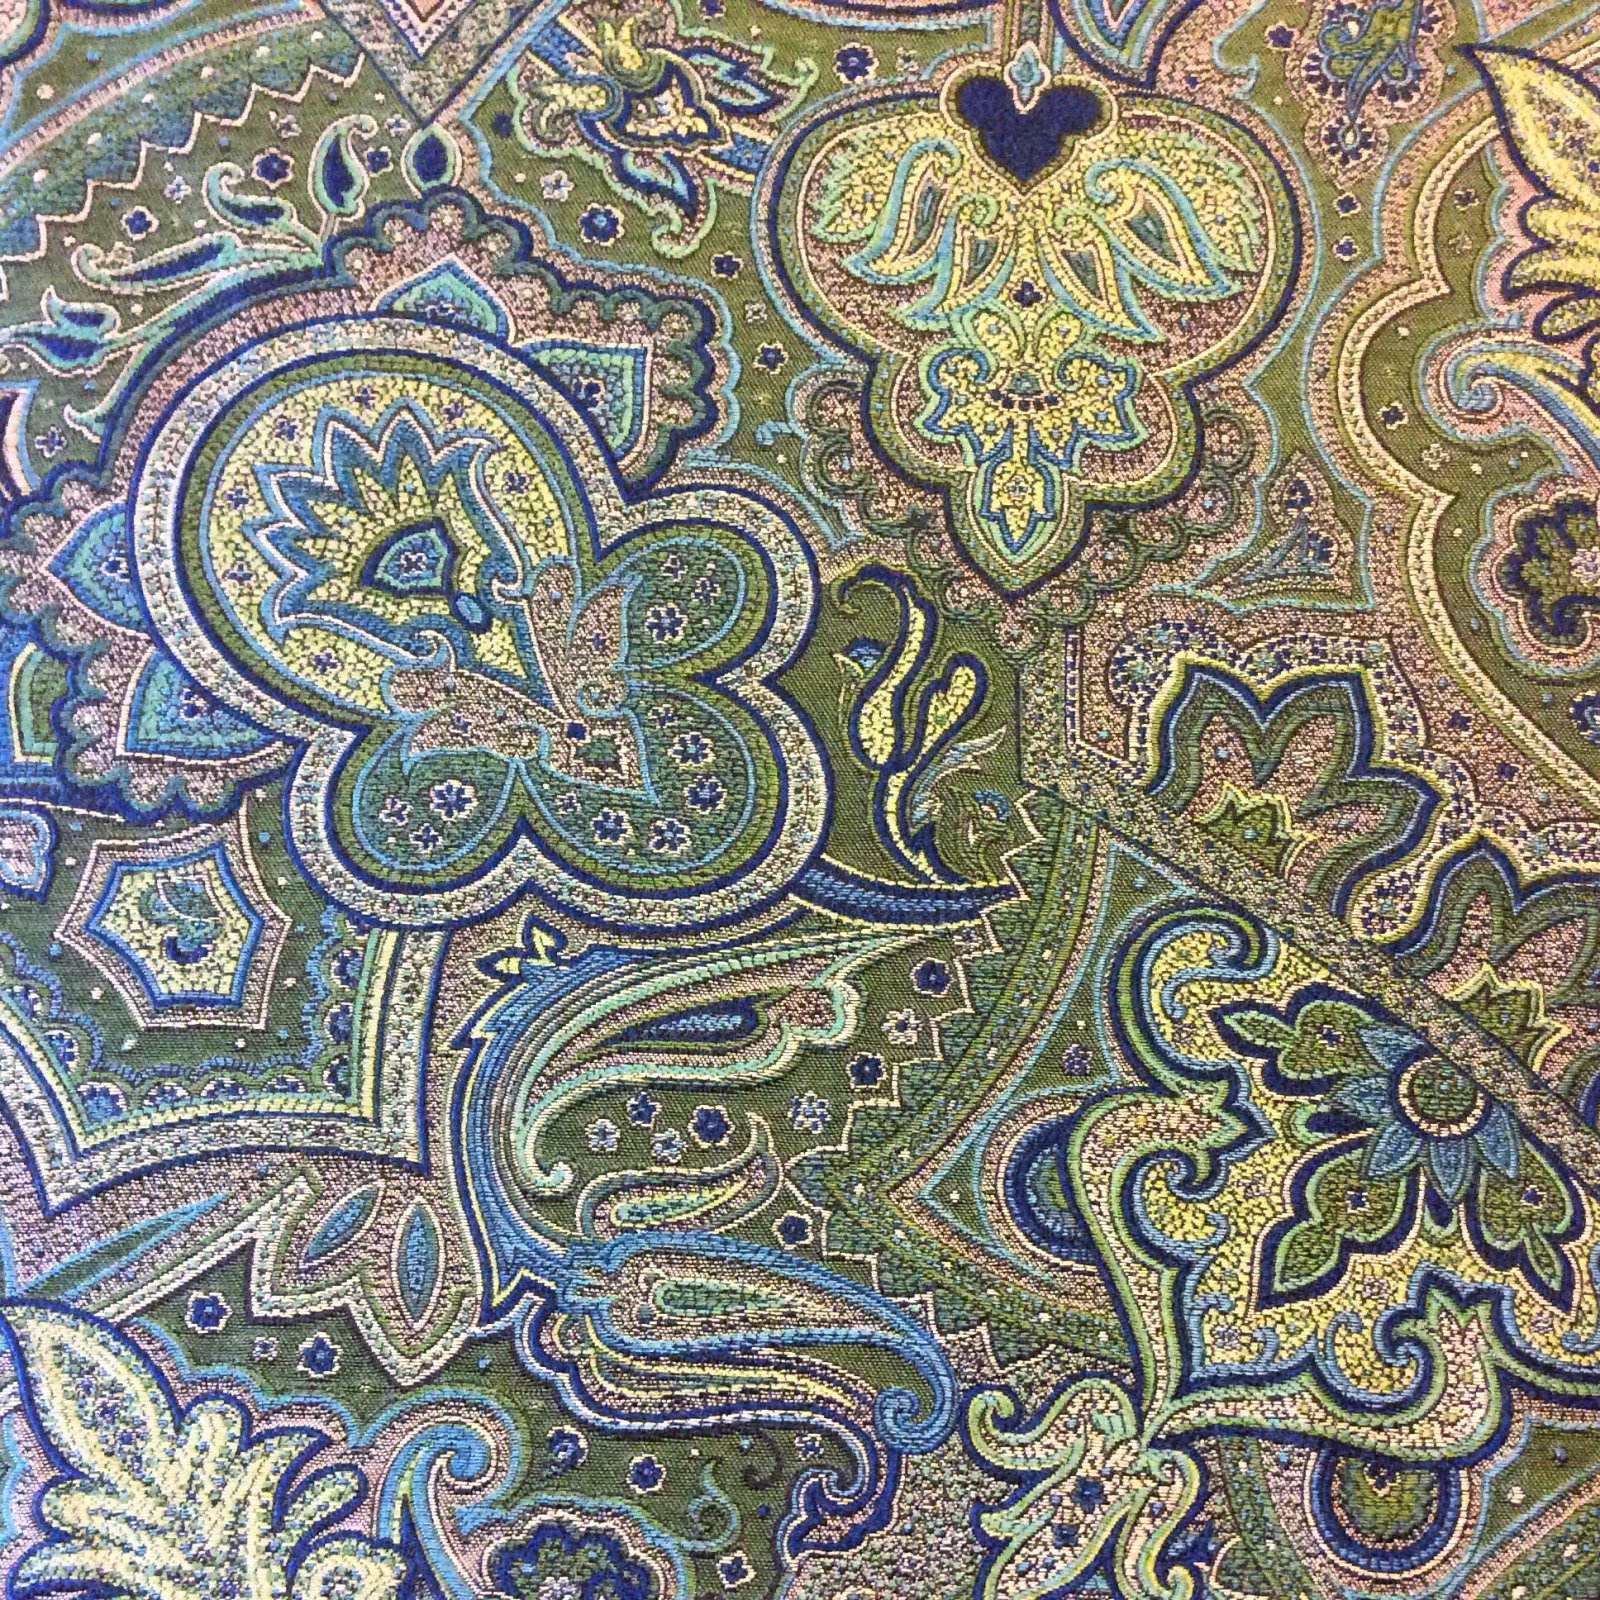 kasbah emerald green peacock blue paisley heavy woven tapestry heavy weight upholstery fabric hda013a